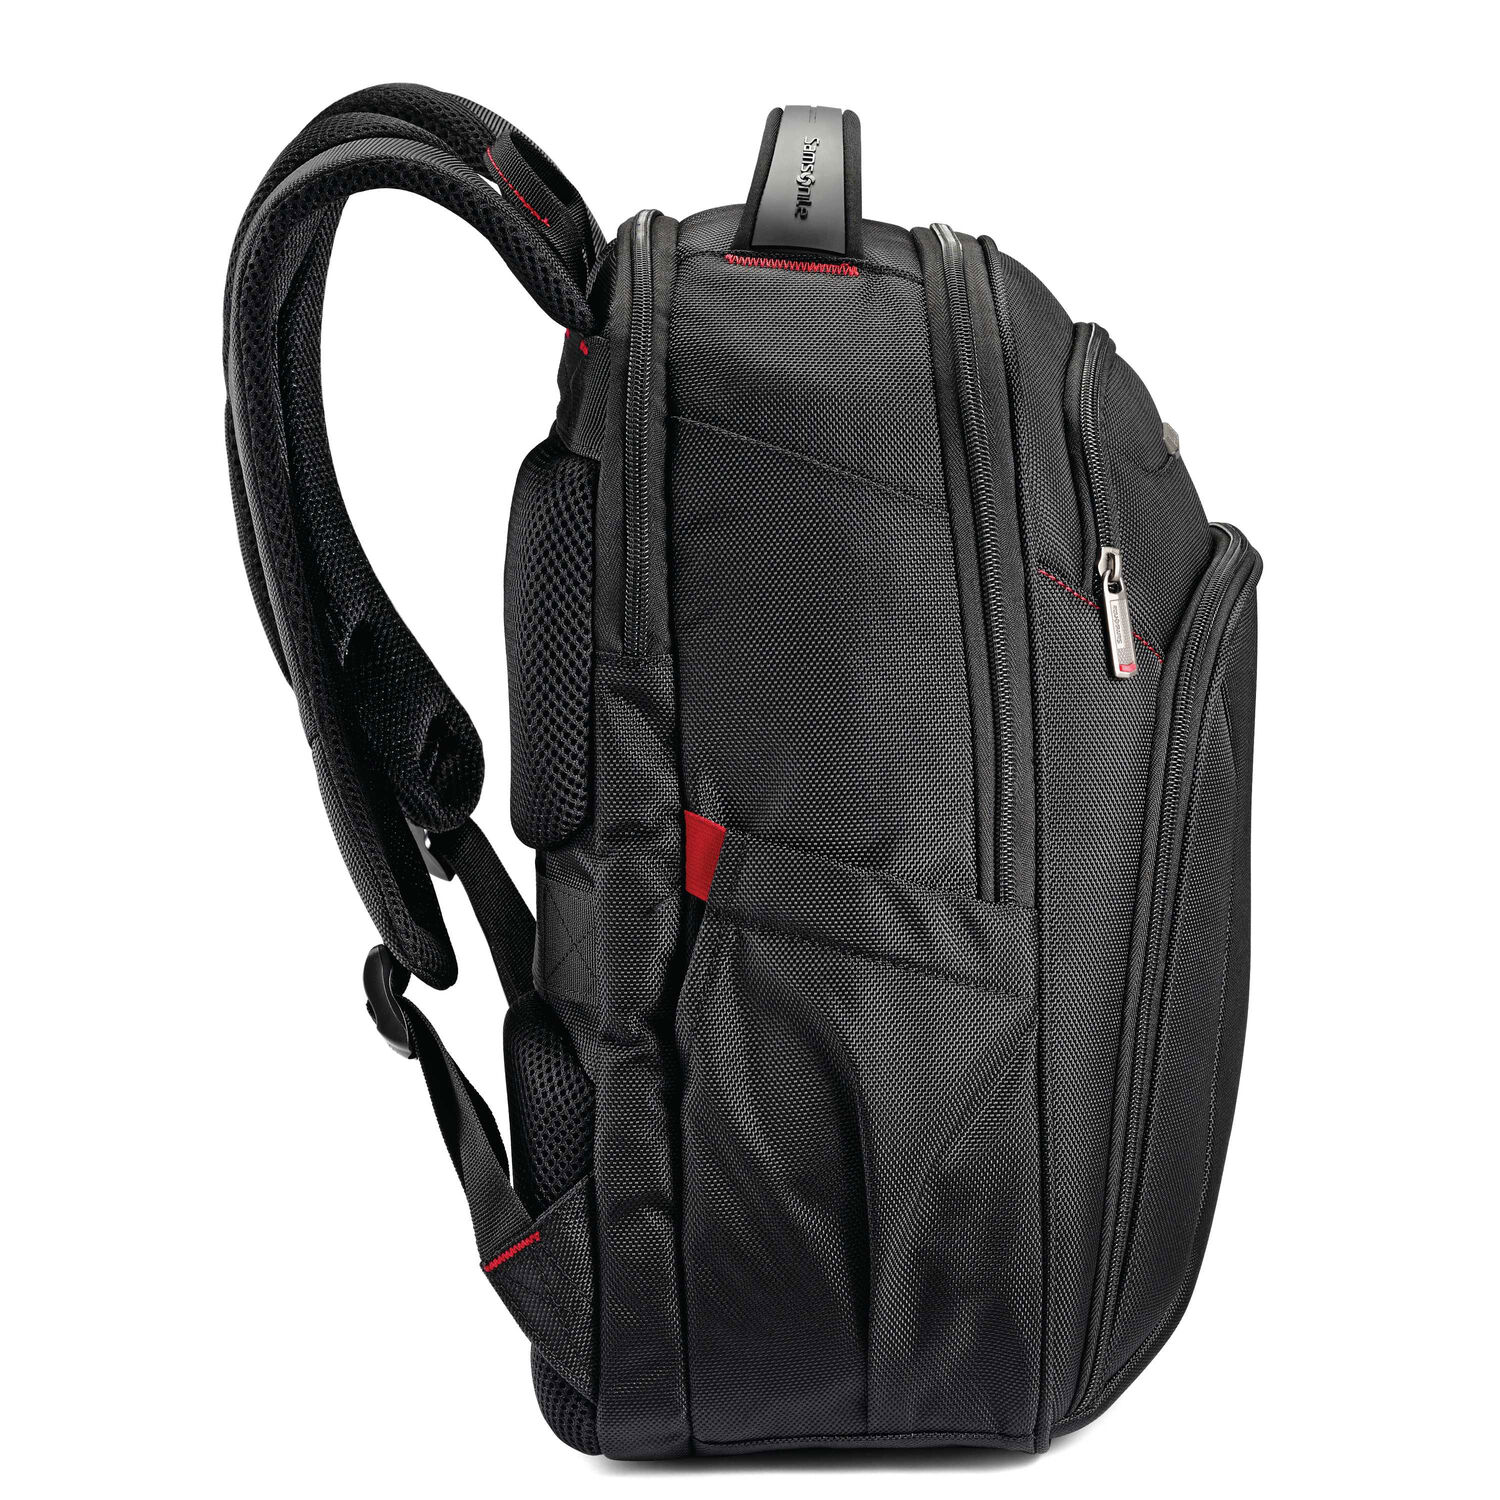 009c931fc2 Samsonite Xenon 3.0 Slim Backpack in the color Black.